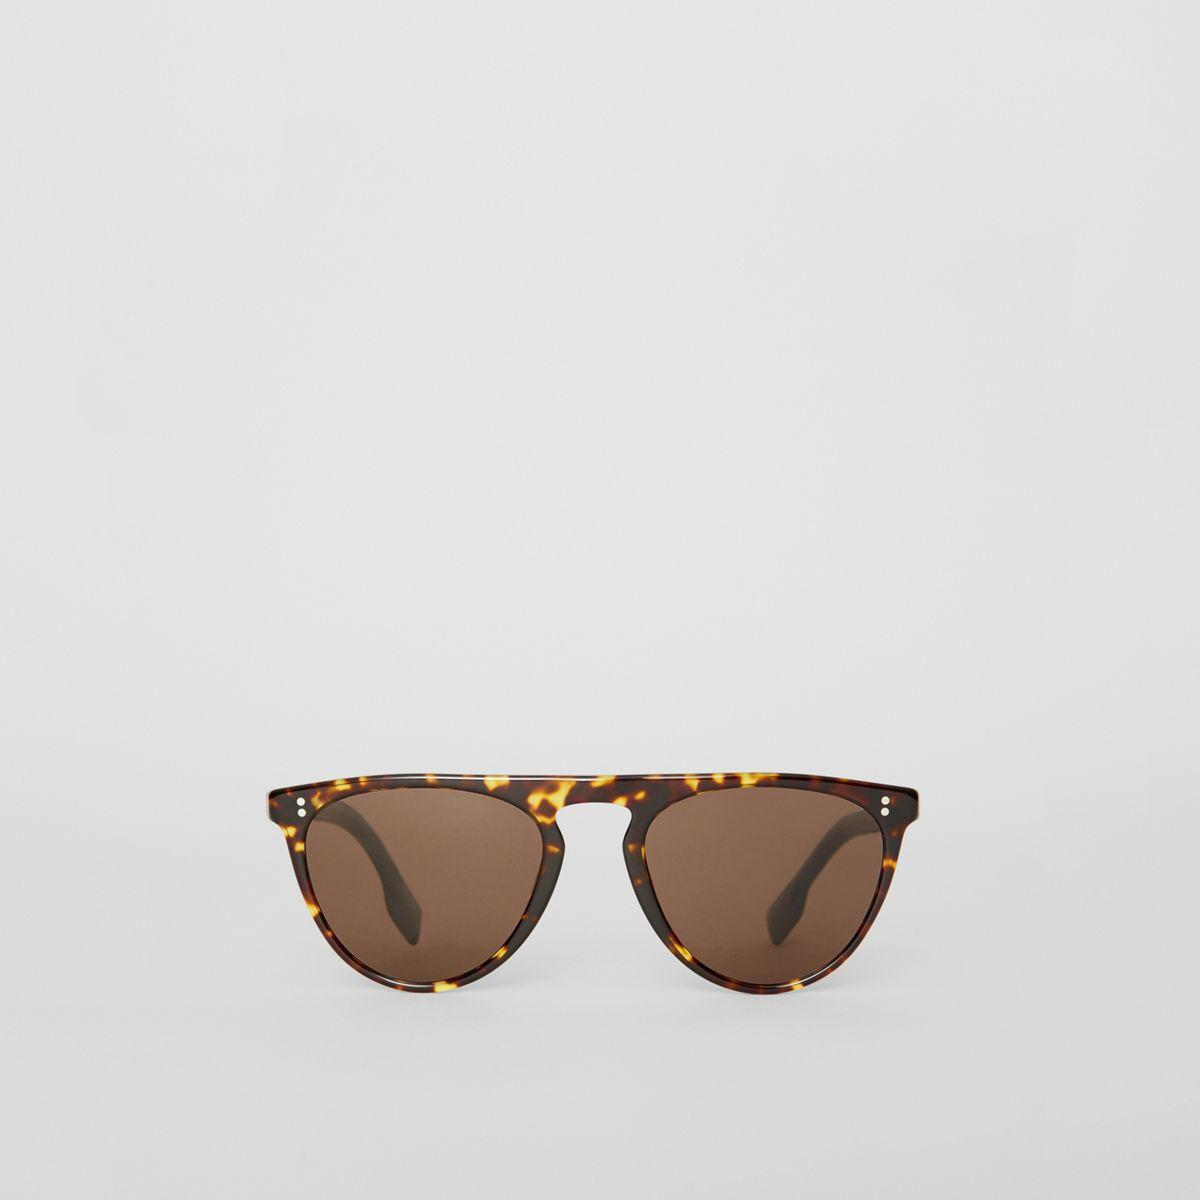 b84064cddc5 Burberry Keyhole D-shaped Sunglasses in Brown for Men - Lyst